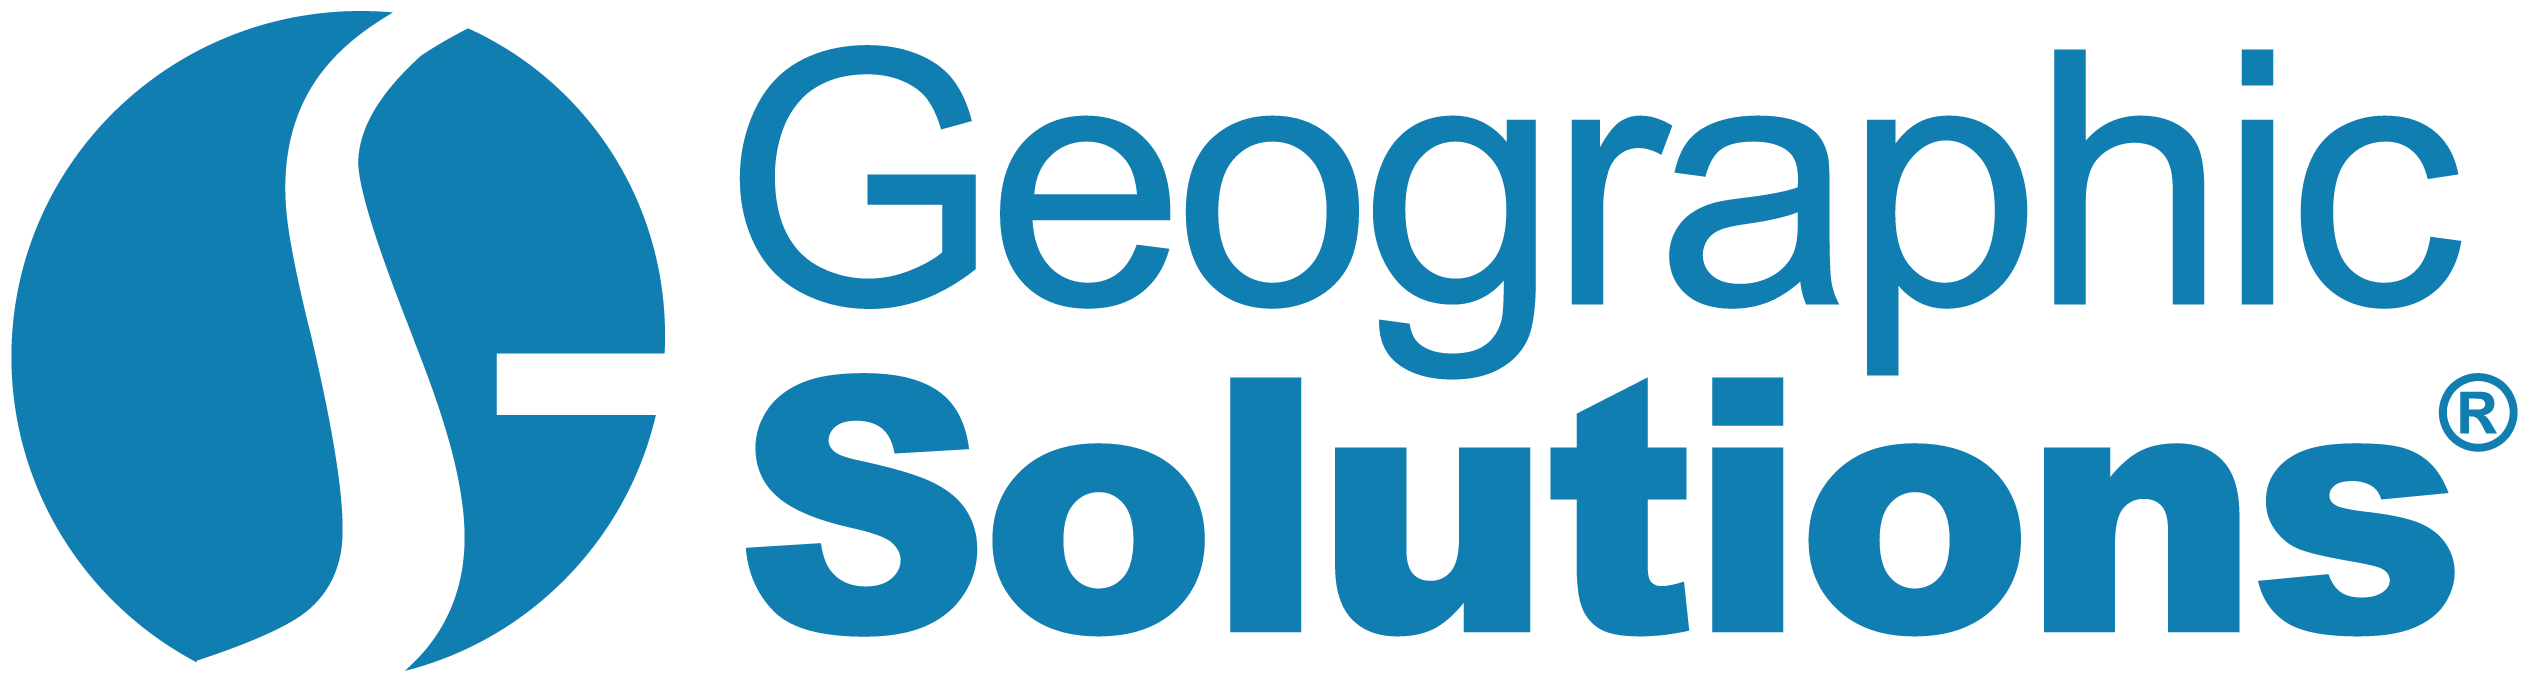 GeoSolutions (Cvent)